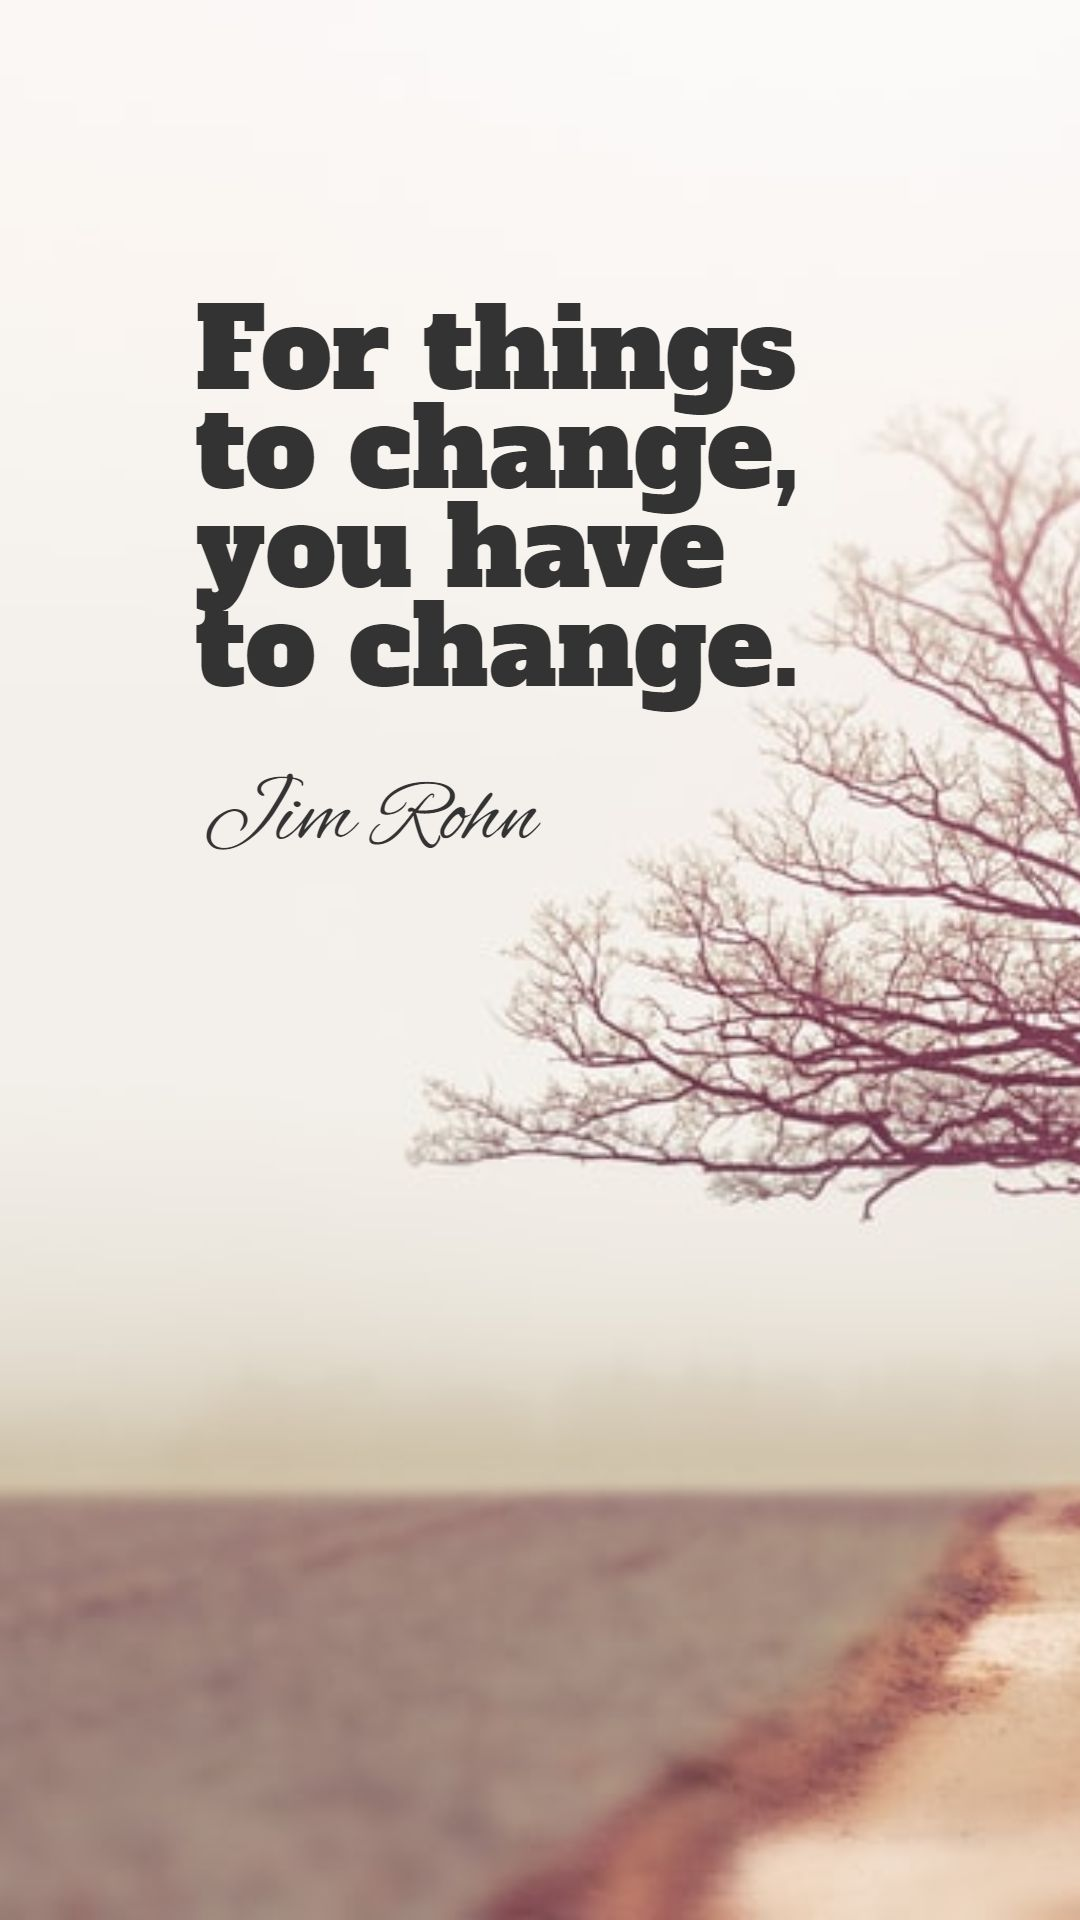 Quotes image of For things to change, you have to change.